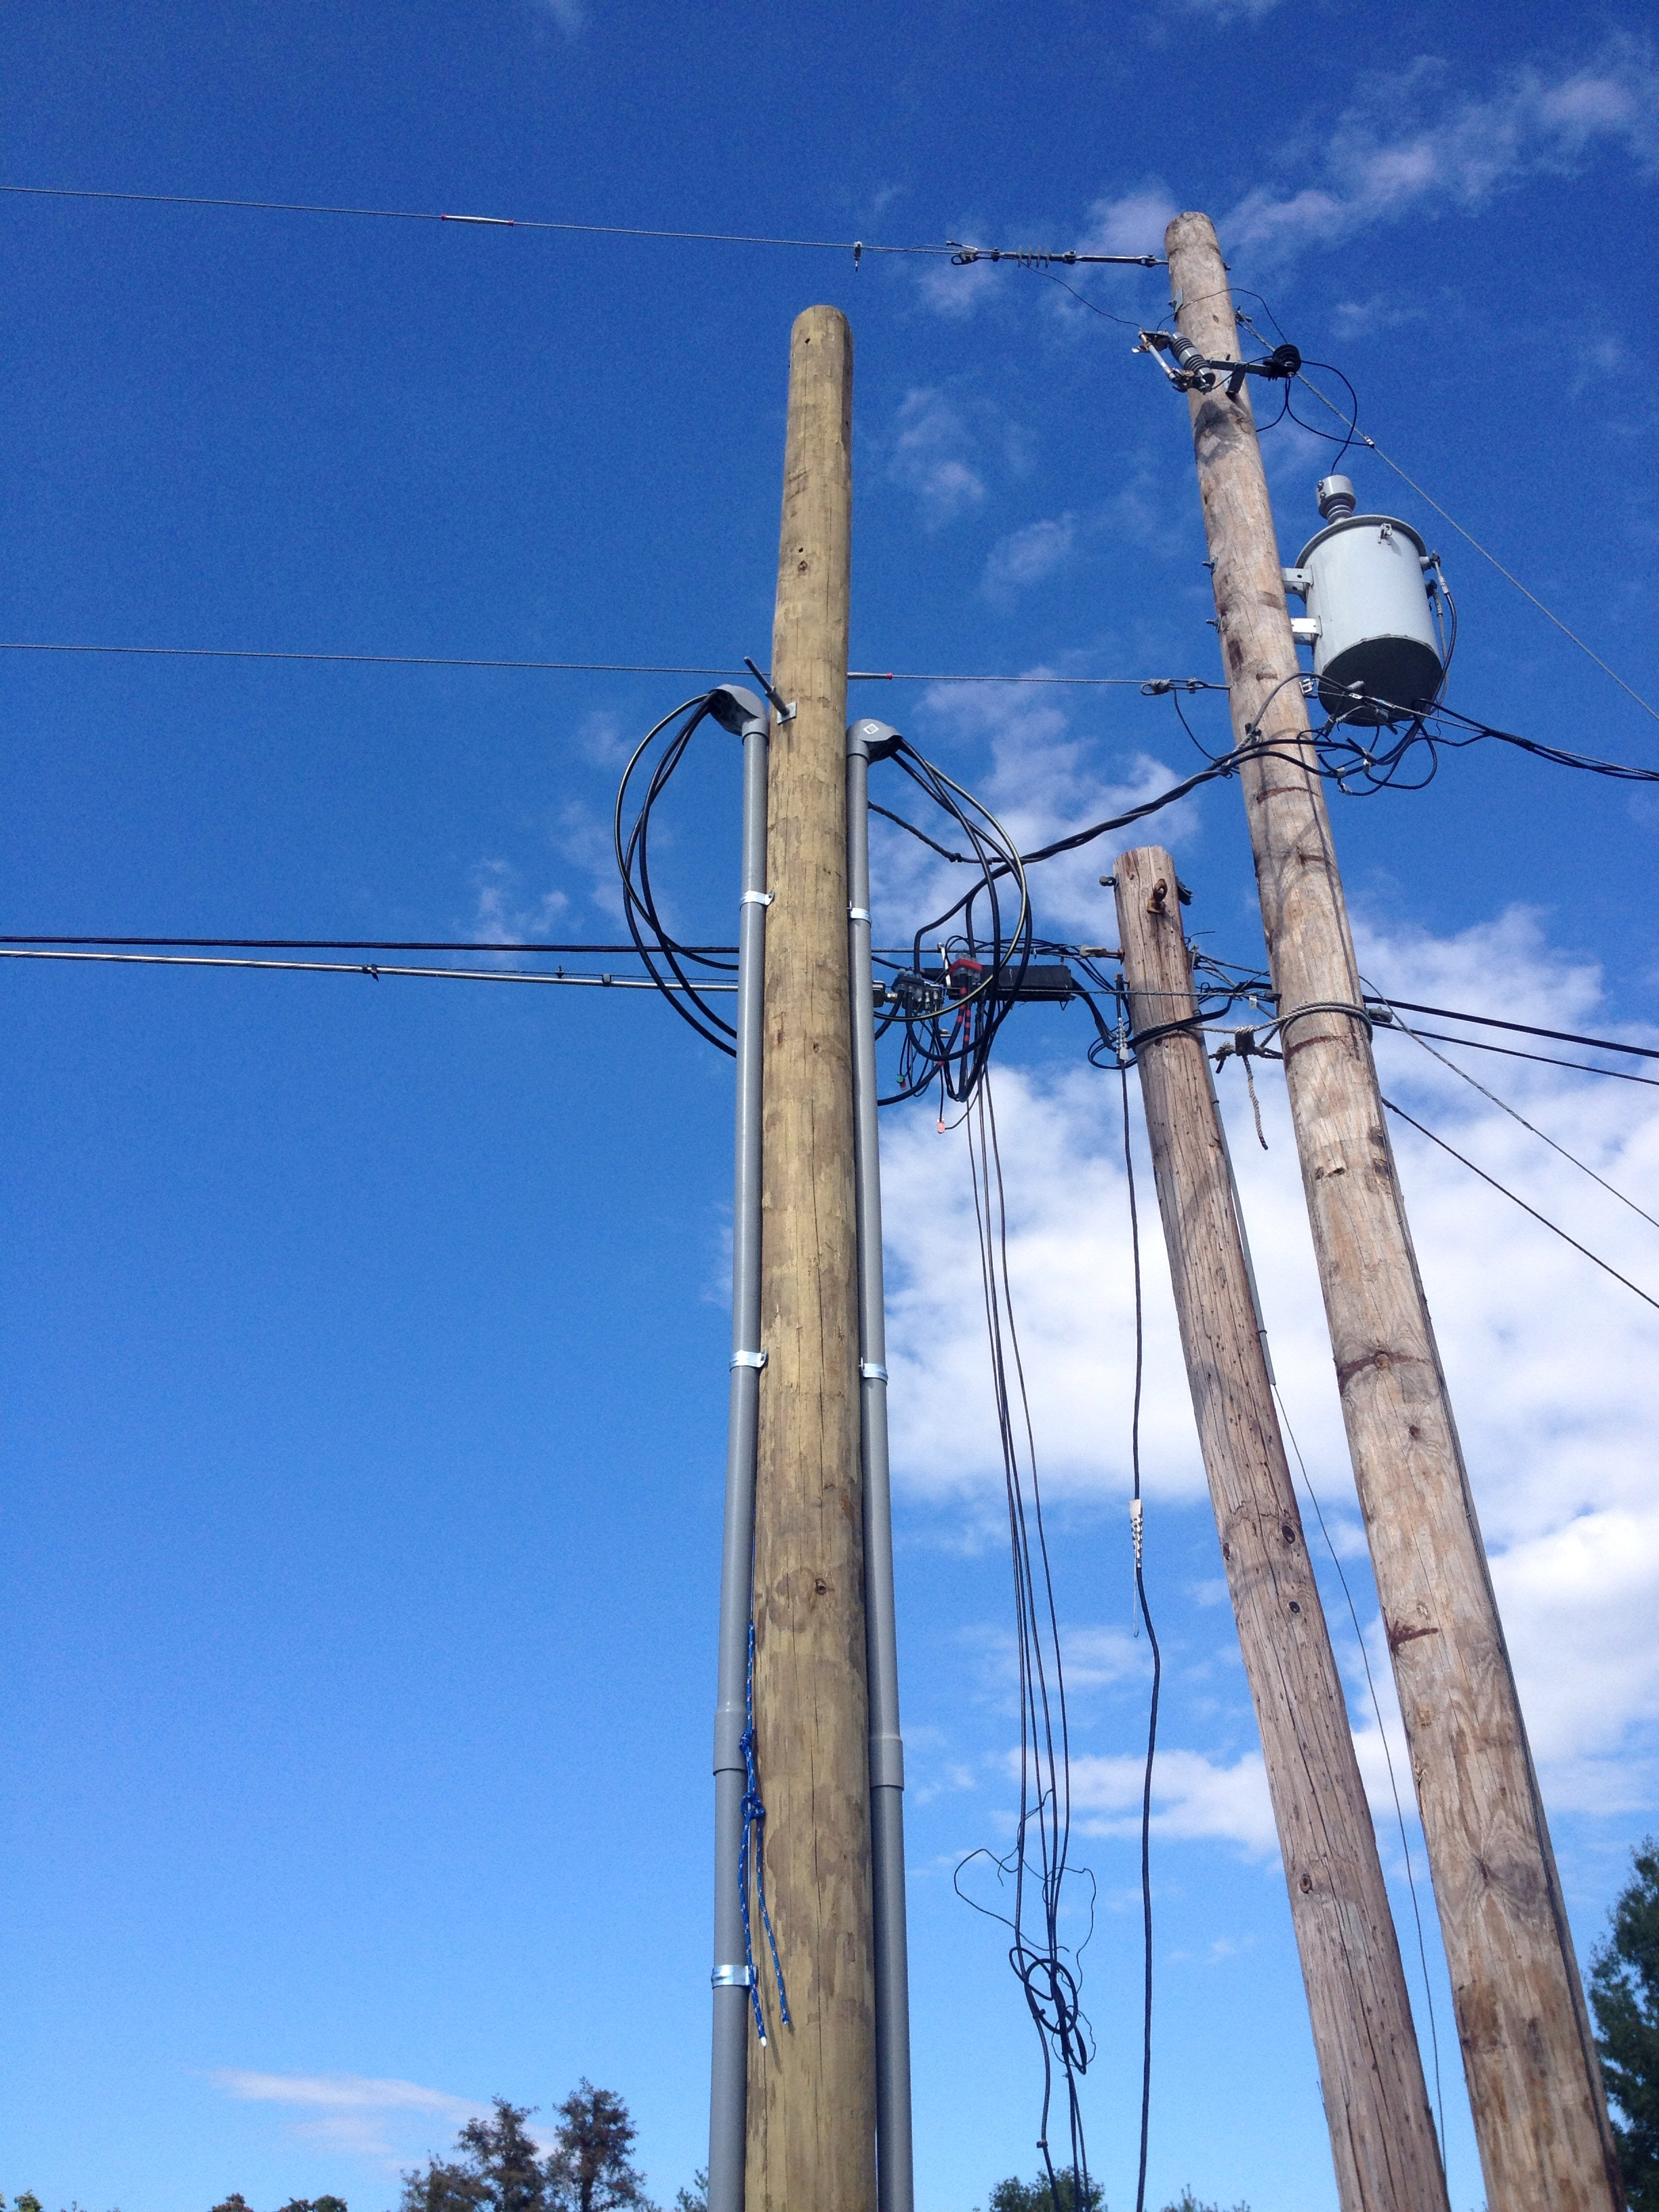 Pole work and configurations